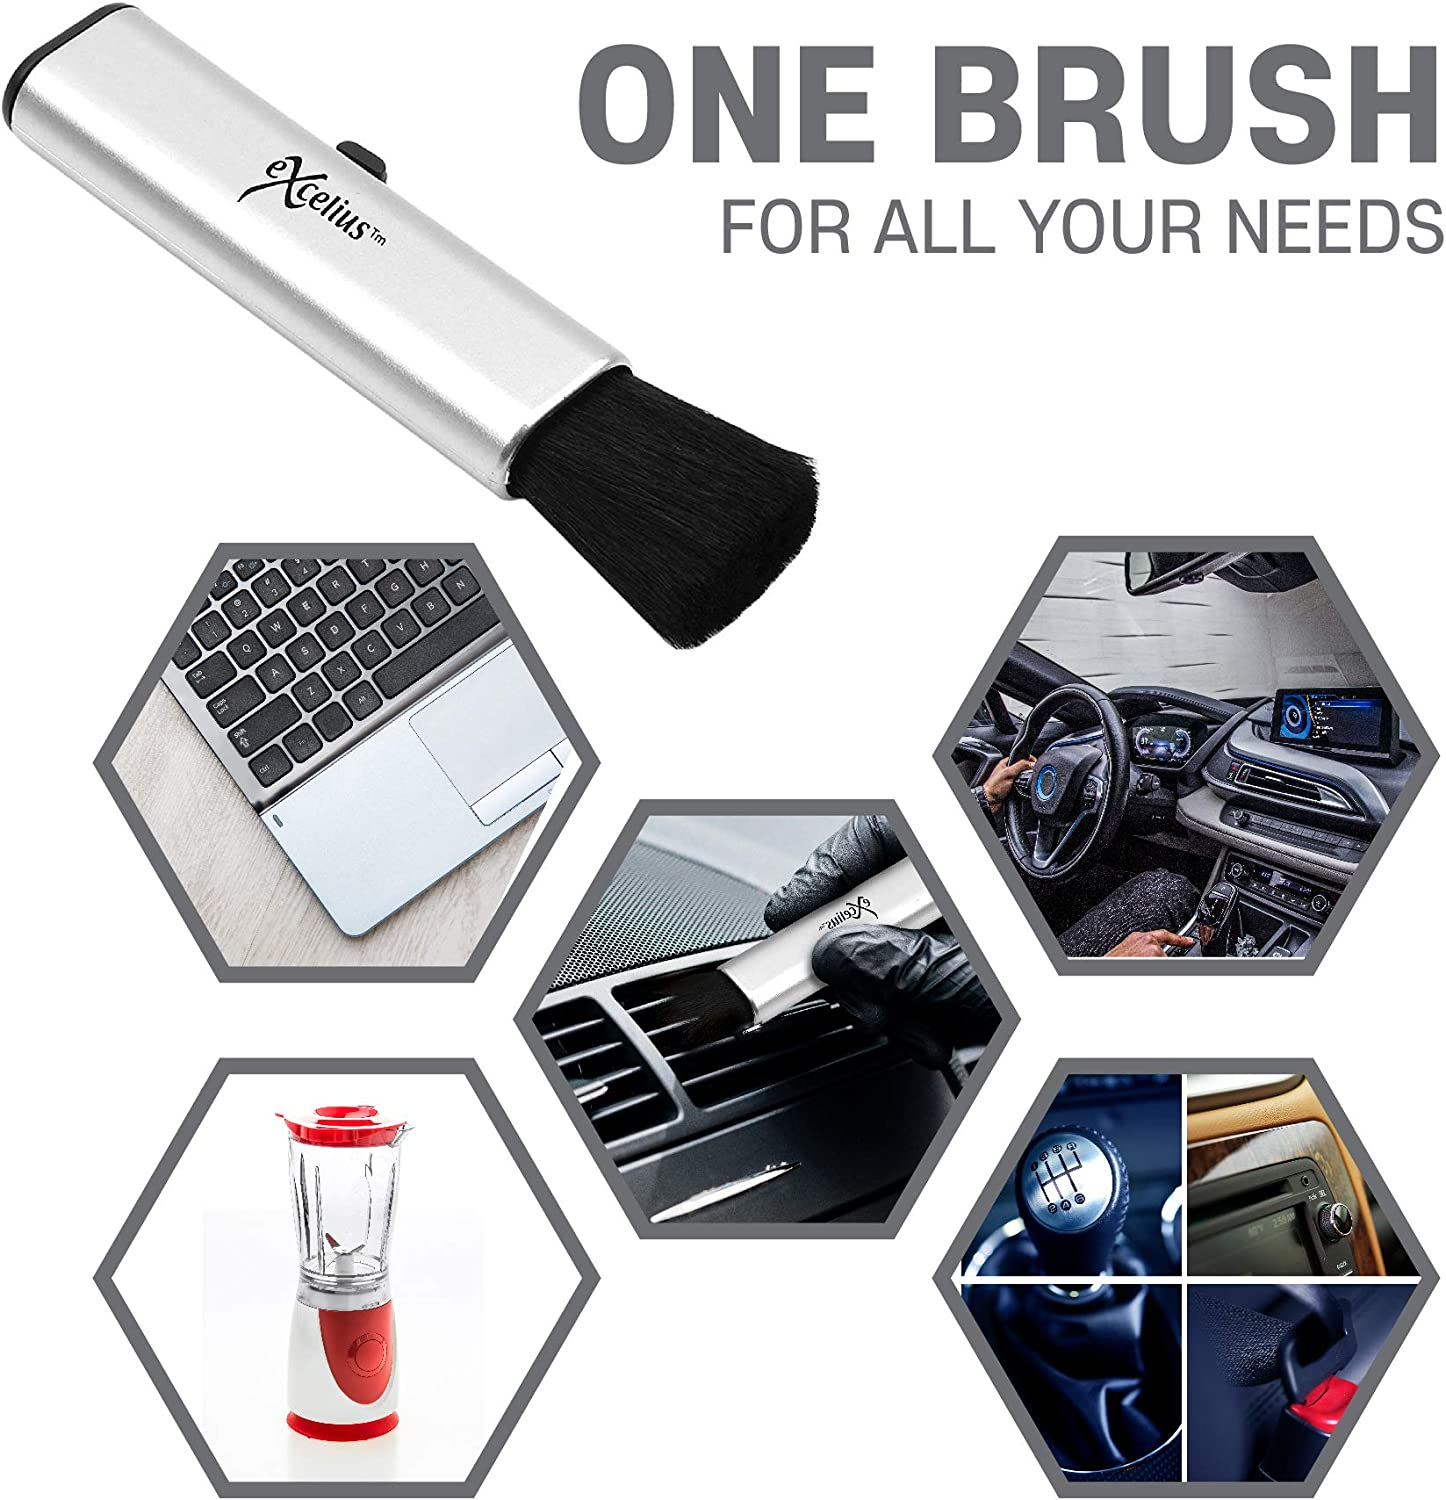 Portable Cleaning Brush Retractable Compact Duster for Computers Laptops Keyboards LCD Car Interior Detailing